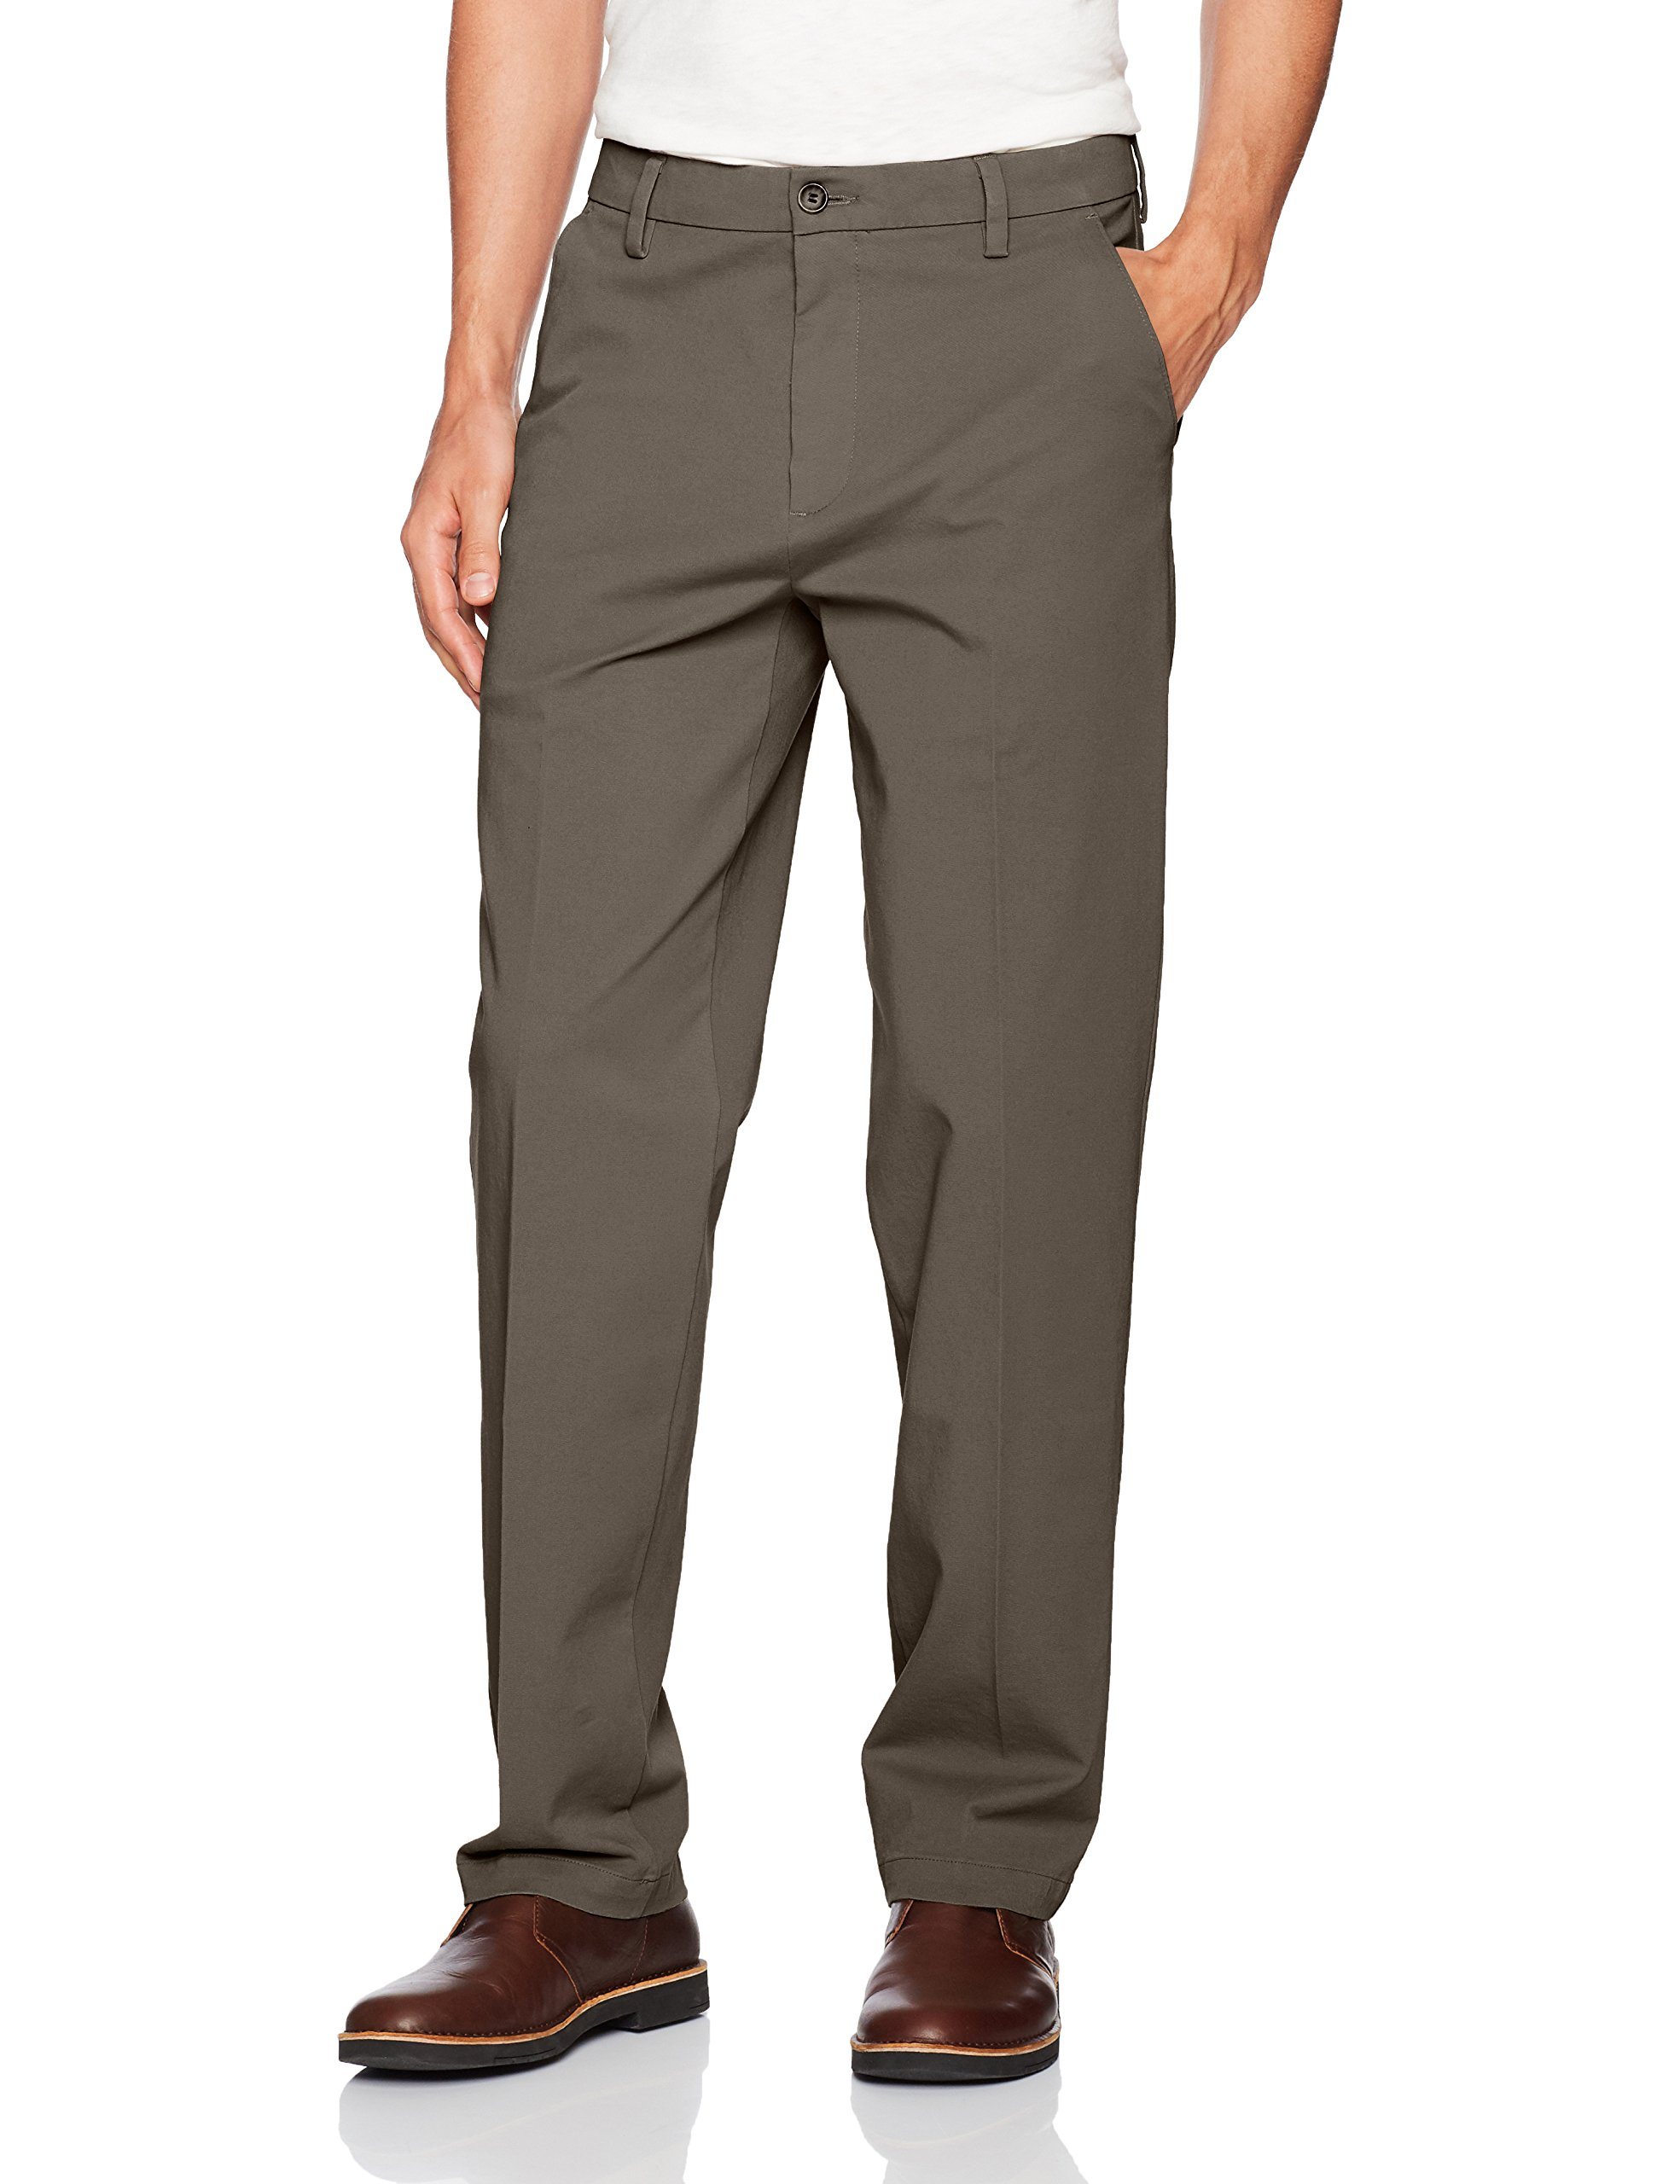 Dockers Men's Classic Fit Workday Khaki Smart 360 Flex Pants D3, Dark Pebble (Stretch), 30W x 30L